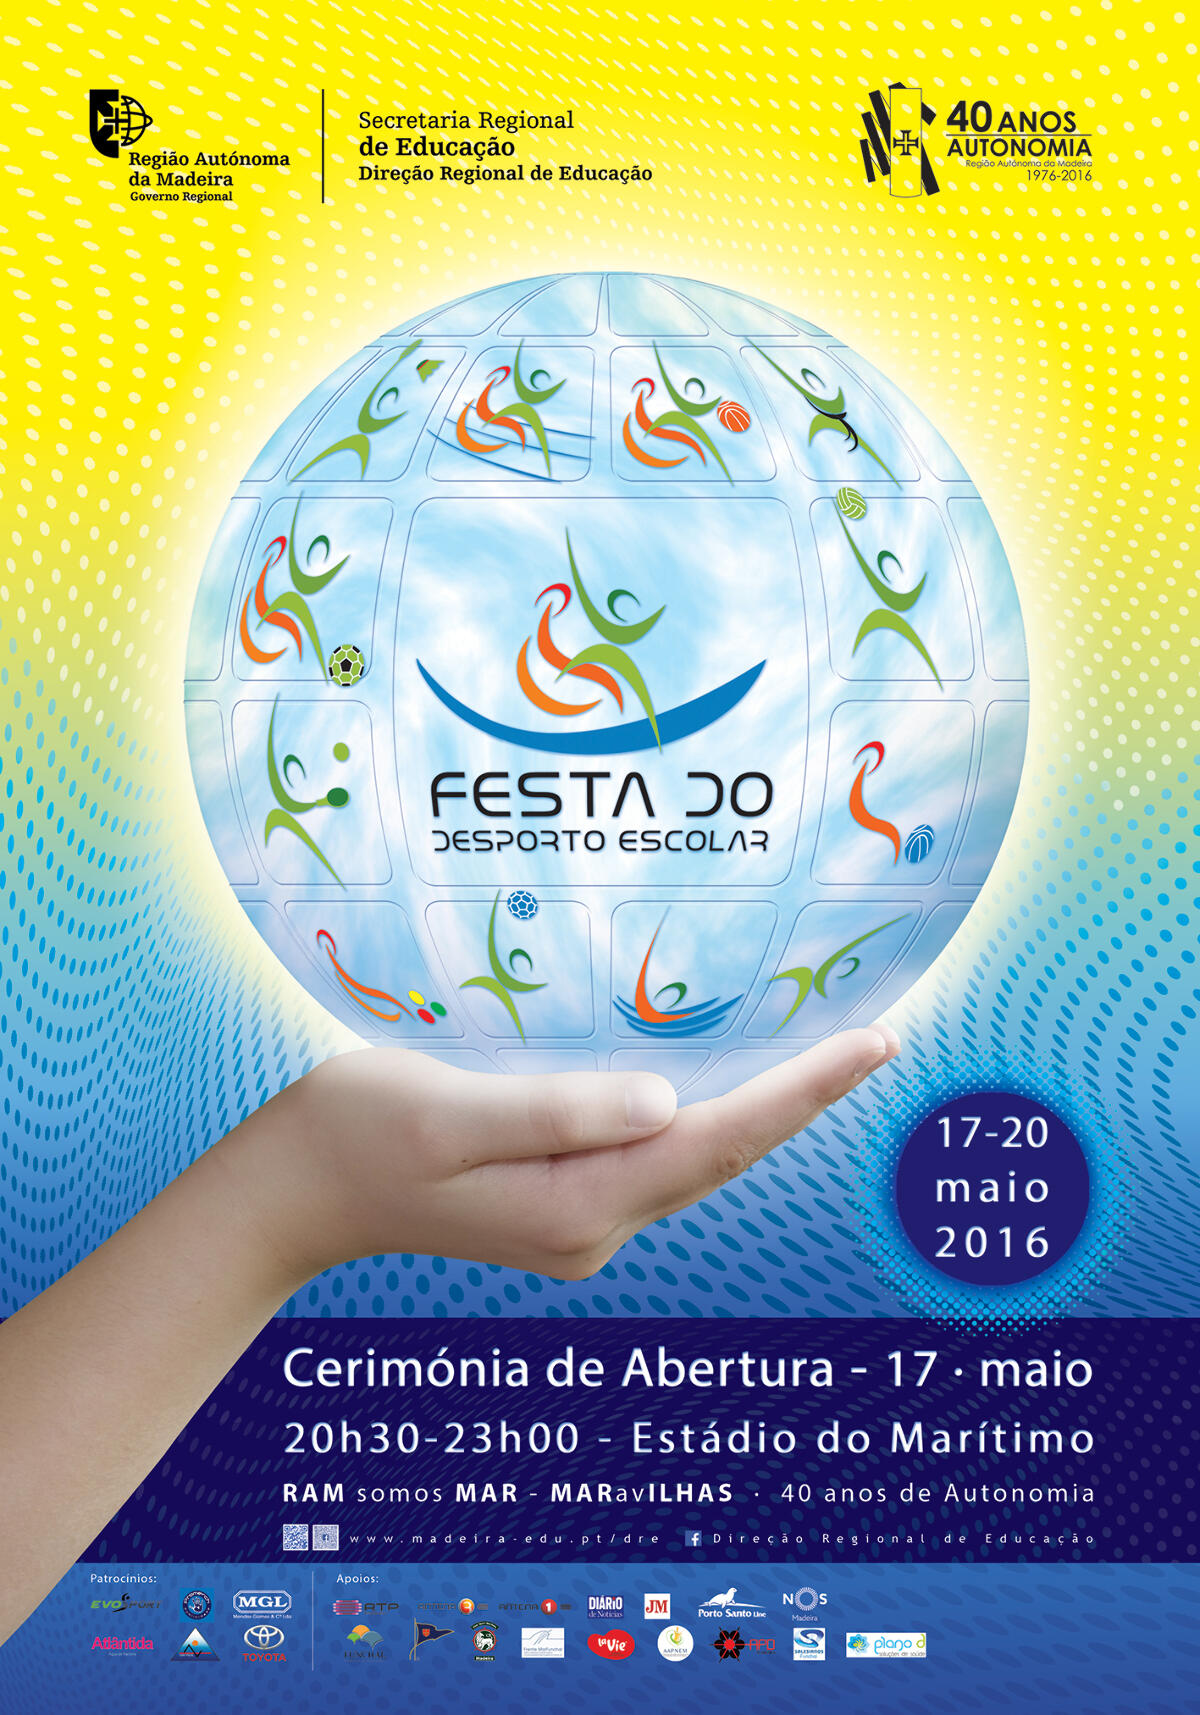 Cerimónia de Abertura do Desporto Escolar 2016